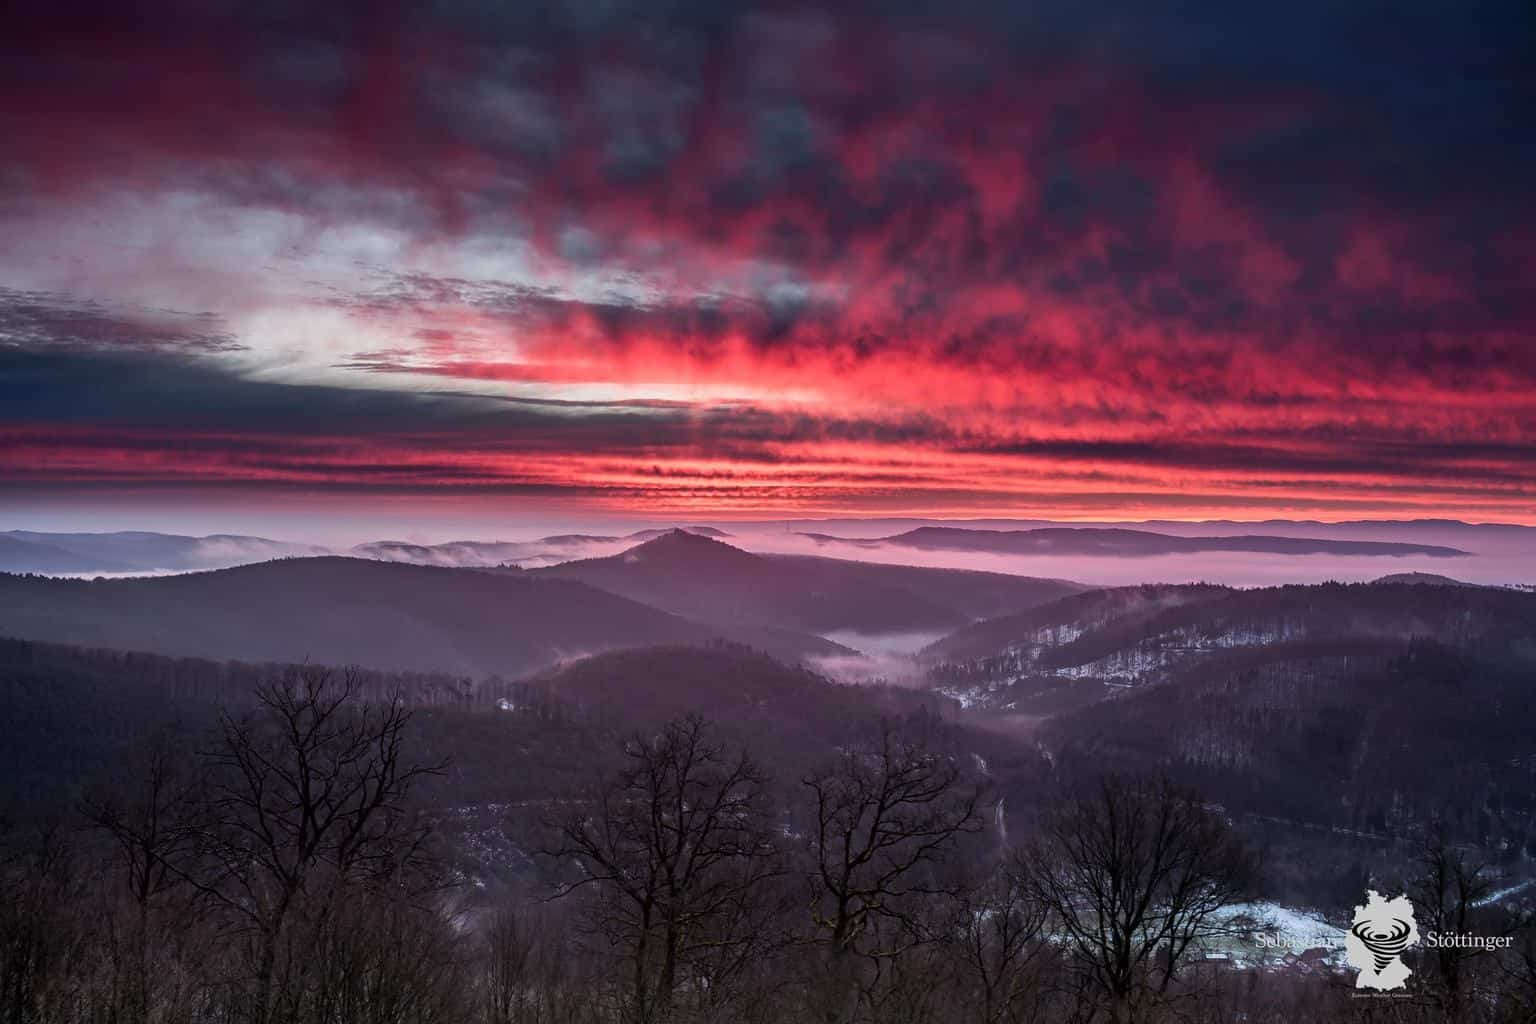 Intensive morning glow on January 24, 2016, looking across the palatinate forest in southwest Germany.